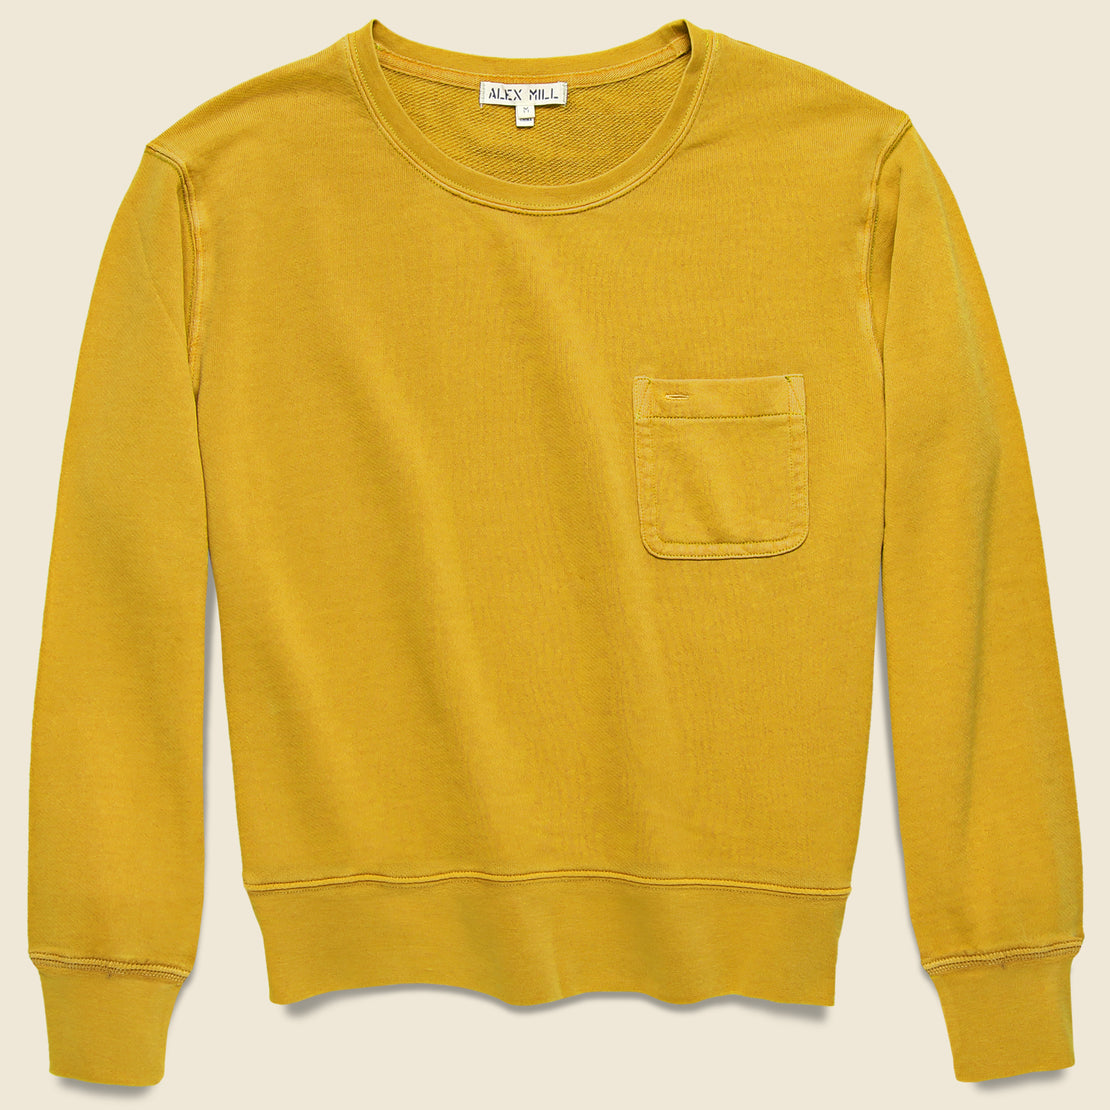 Alex Mill Fleece Pocket Sweatshirt - Honey Mustard